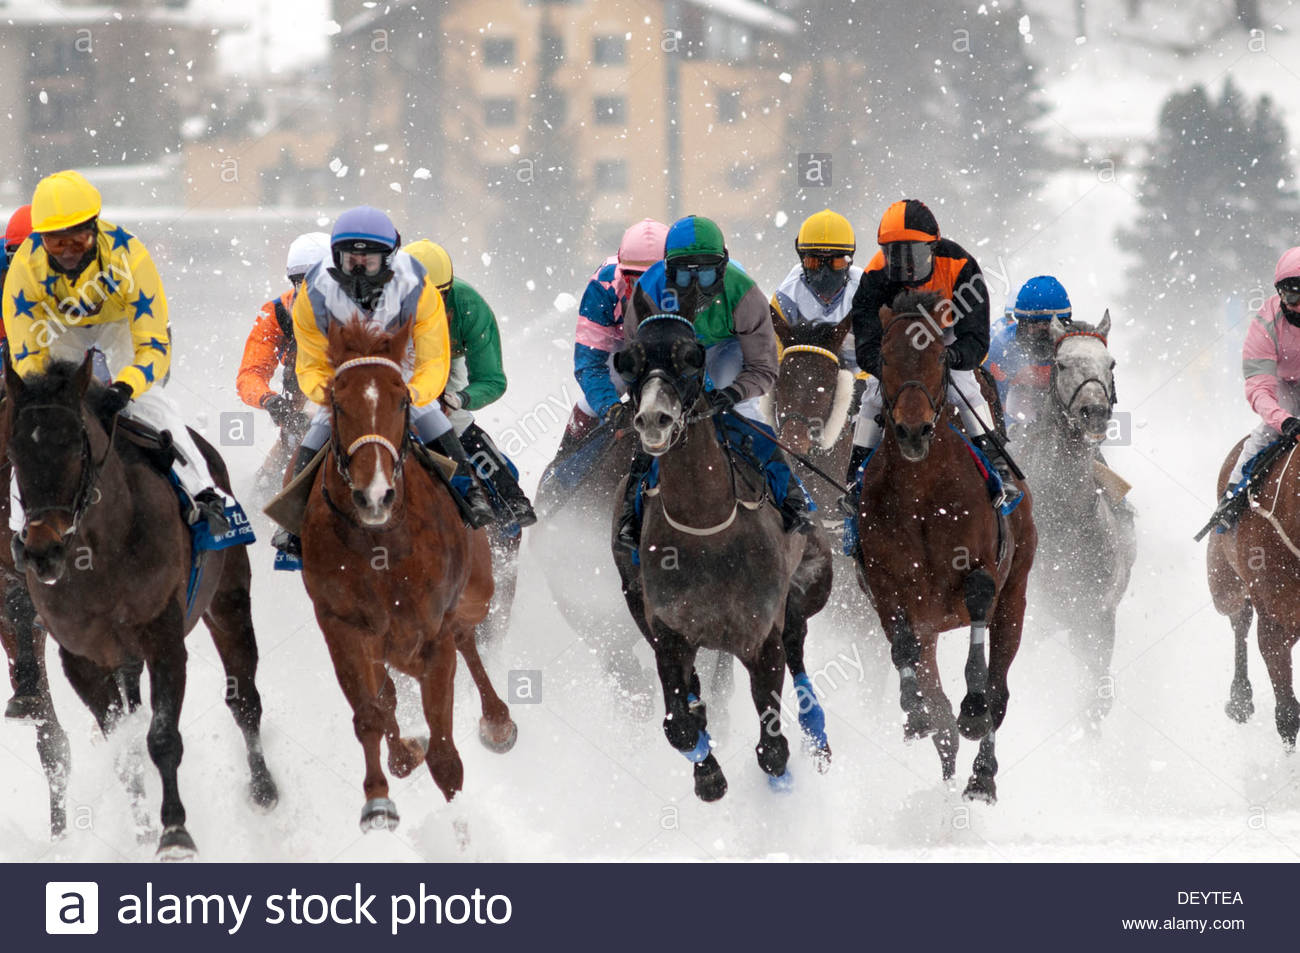 St. Moritz: horse racing, 'White Turf', frozen lake - Stock Image